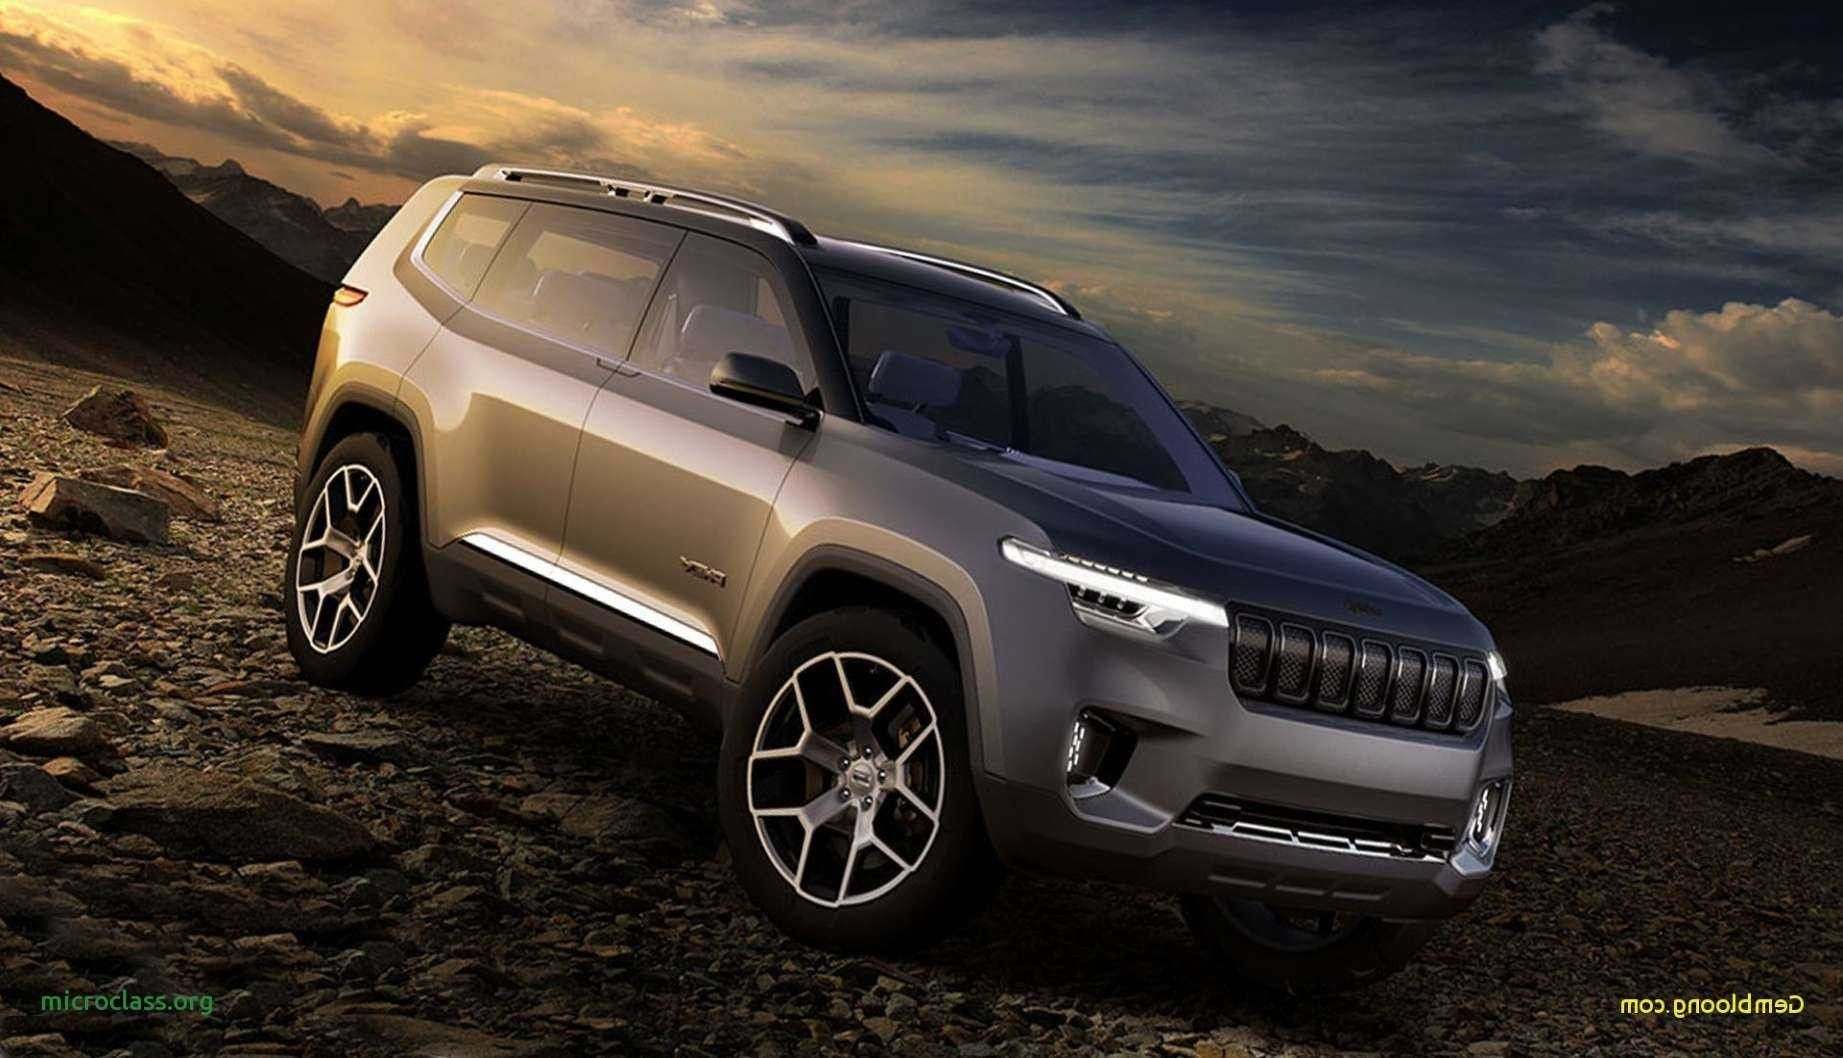 New 2020 Grand Cherokee Srt Concept Jeep Grand Cherokee Jeep